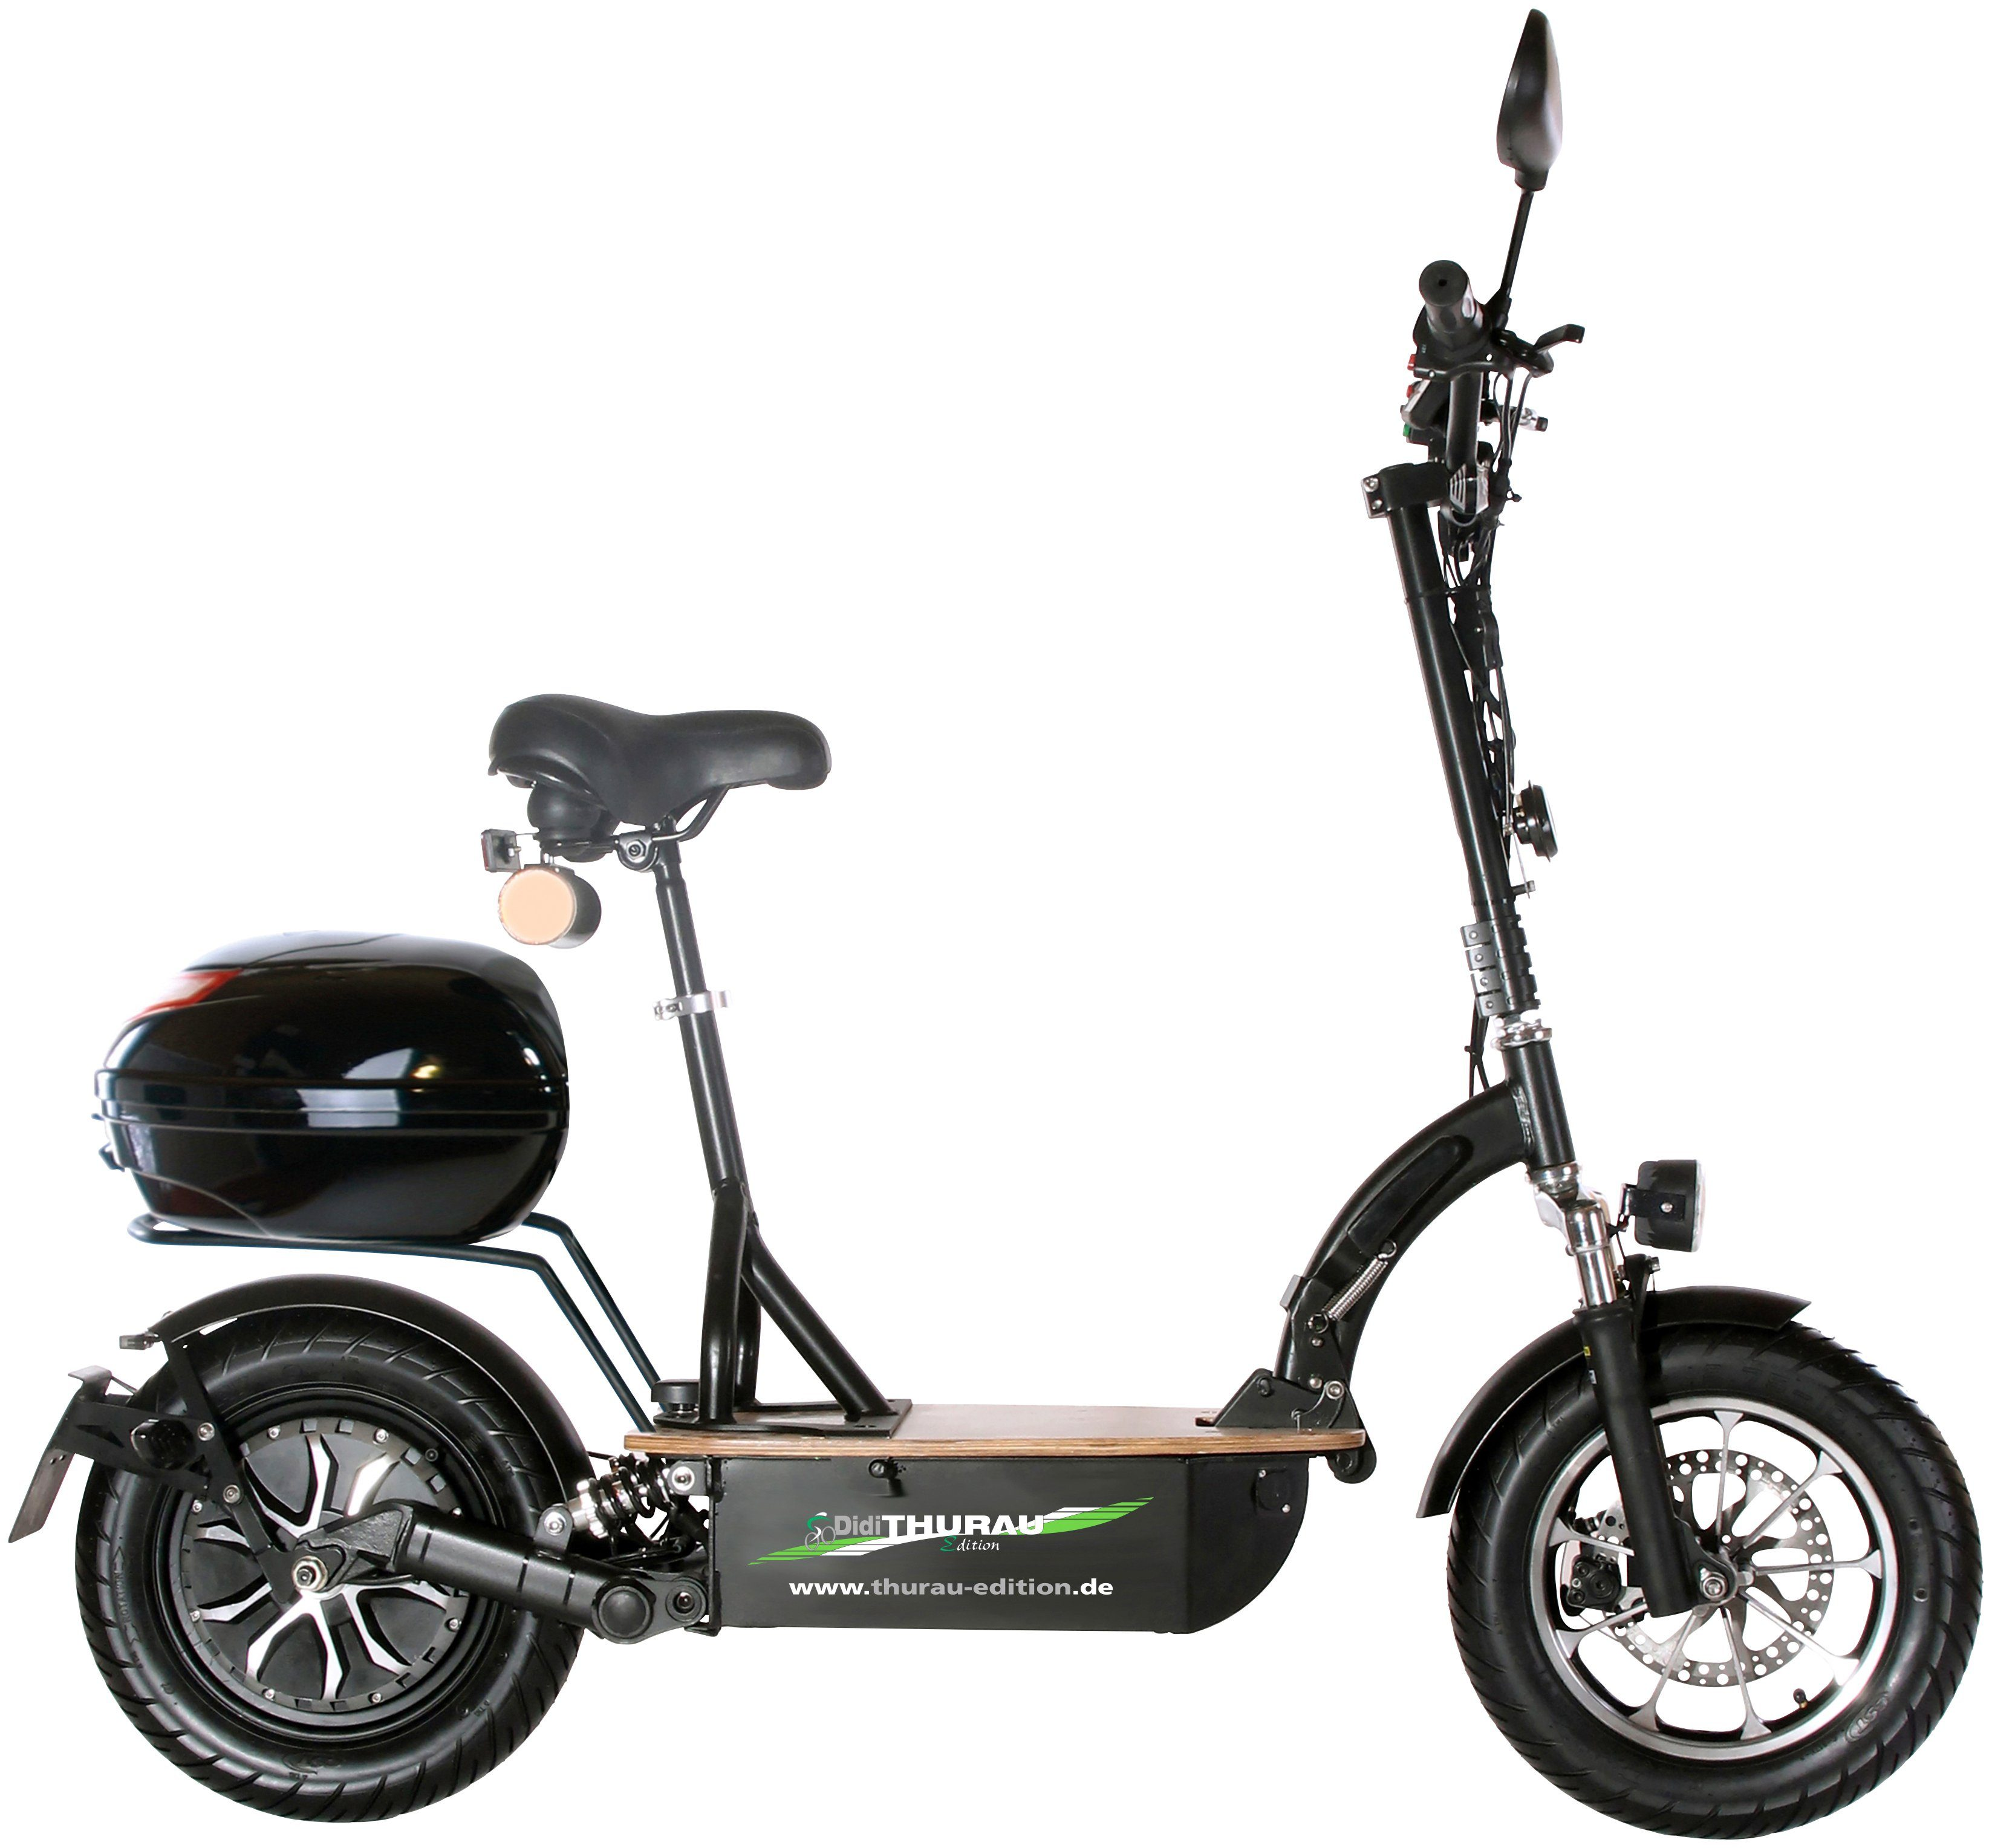 DIDI THURAU E-Scooter »Eco-Tourer Safety RSP«, 45 km/h, Inkl. Rundum-Sorglos-Paket